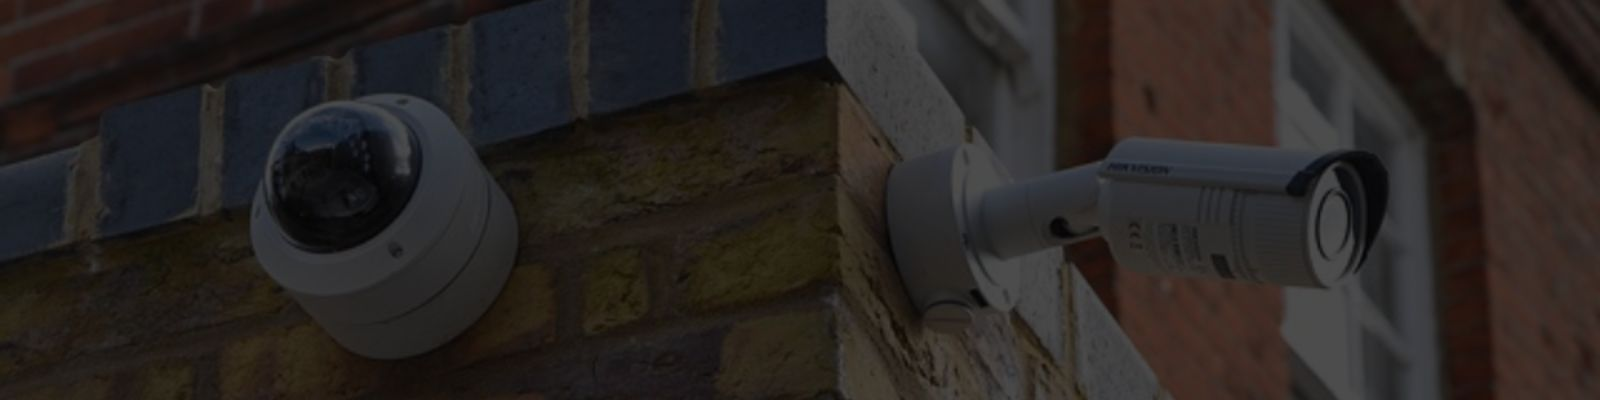 alarm systems pros in Rivonia